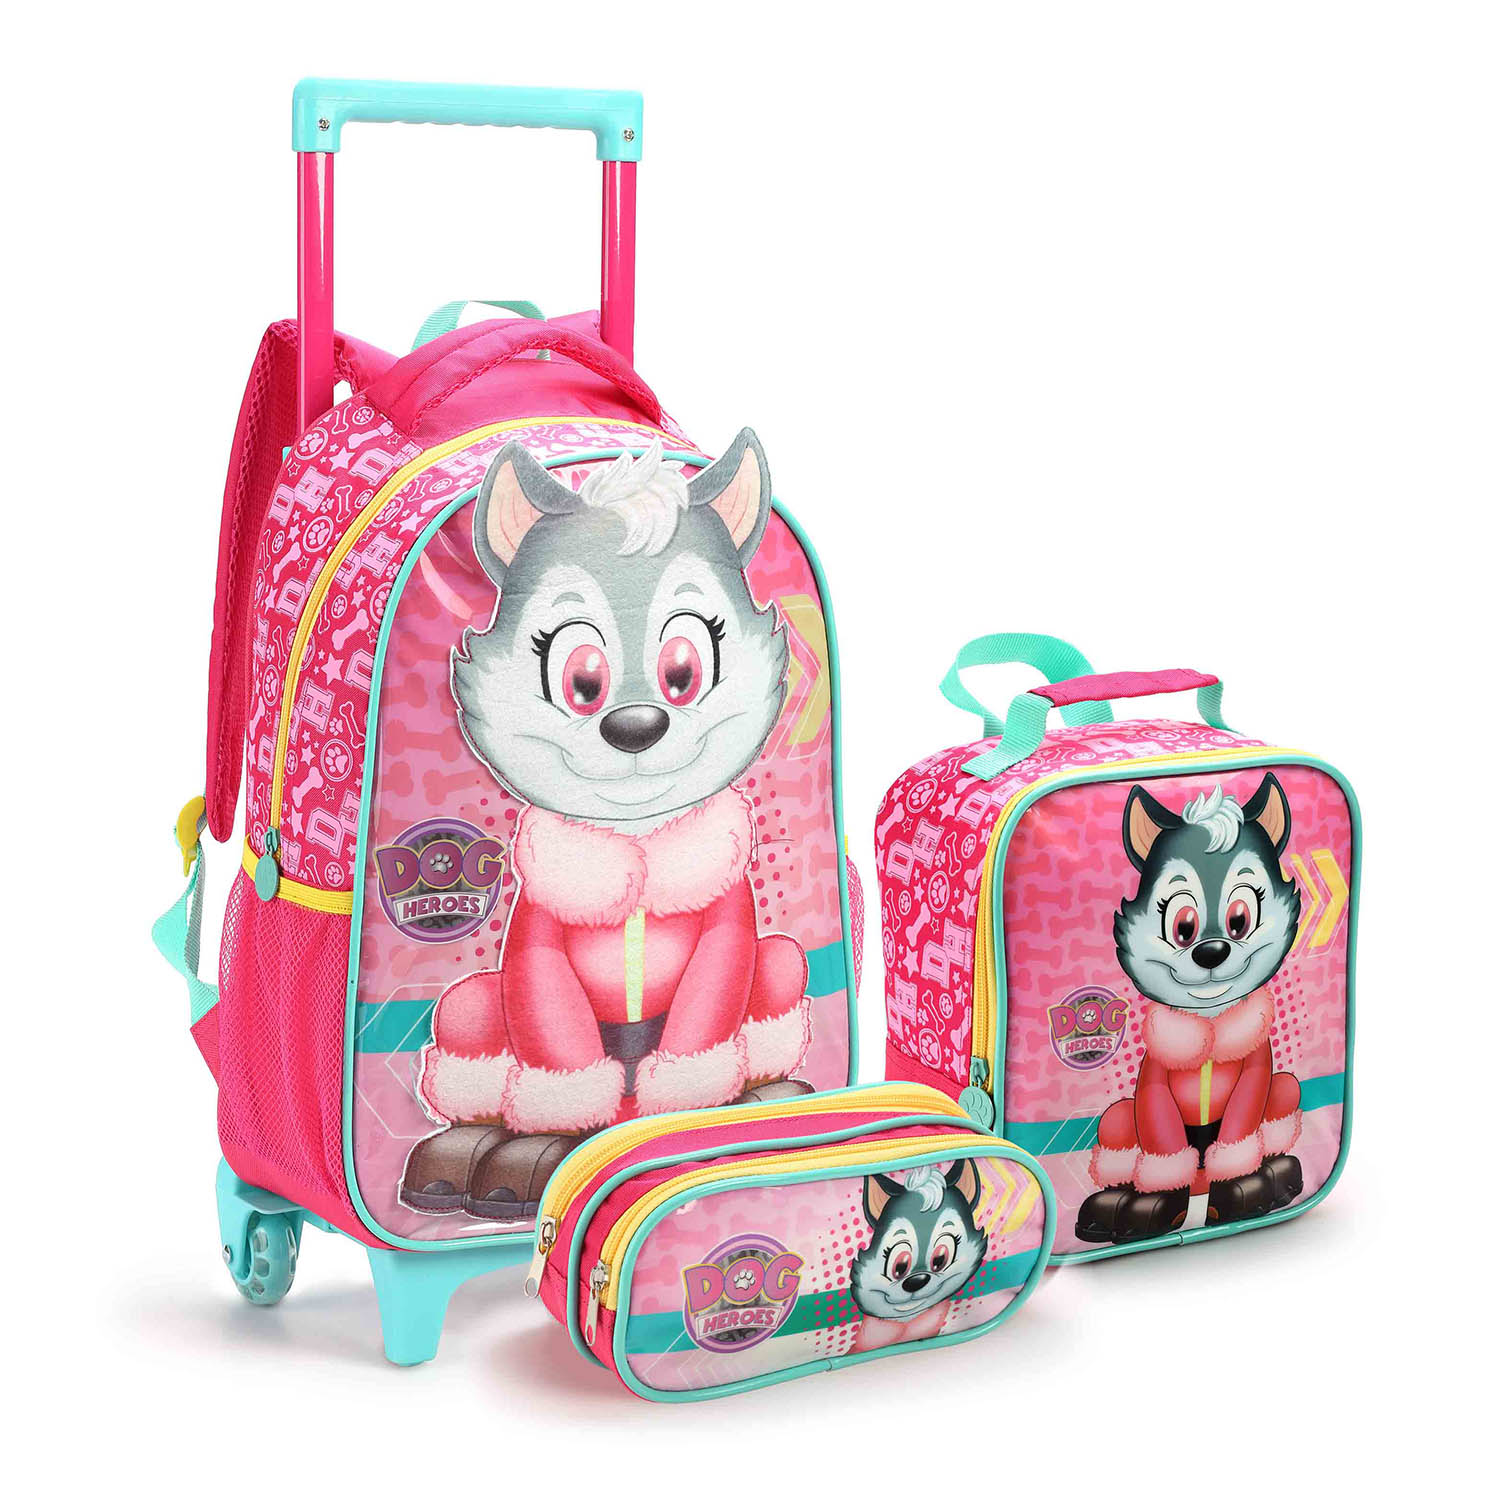 KIT ESCOLAR DOG HEROES FEMININO - SEANITE